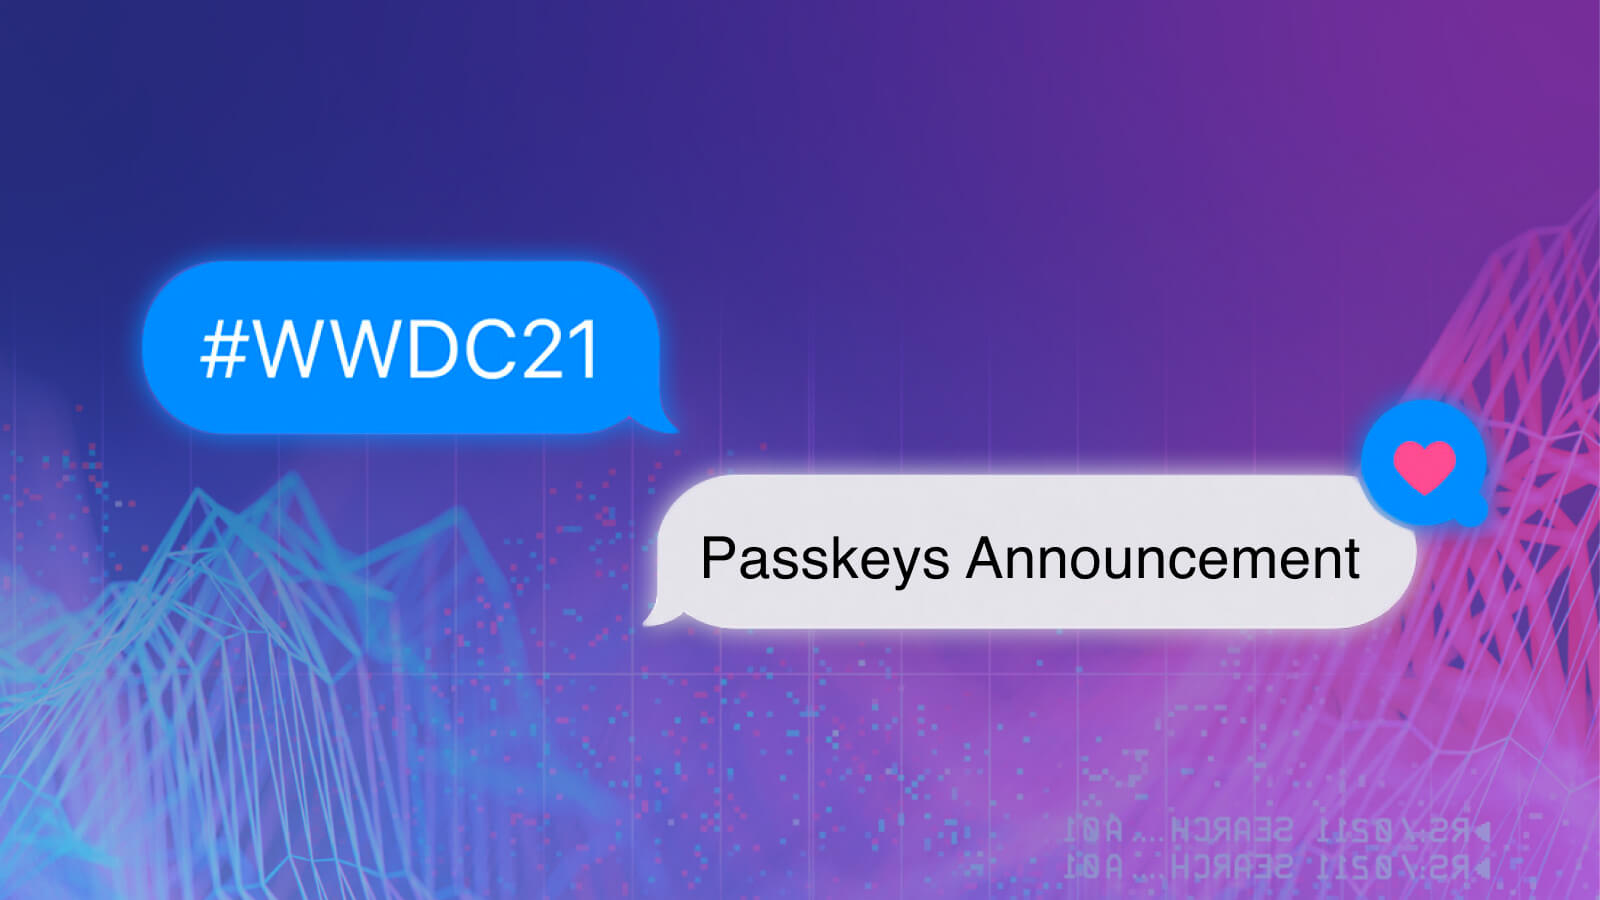 Image for What Apple's WWDC Passkeys Announcement Means for Enterprise IAM